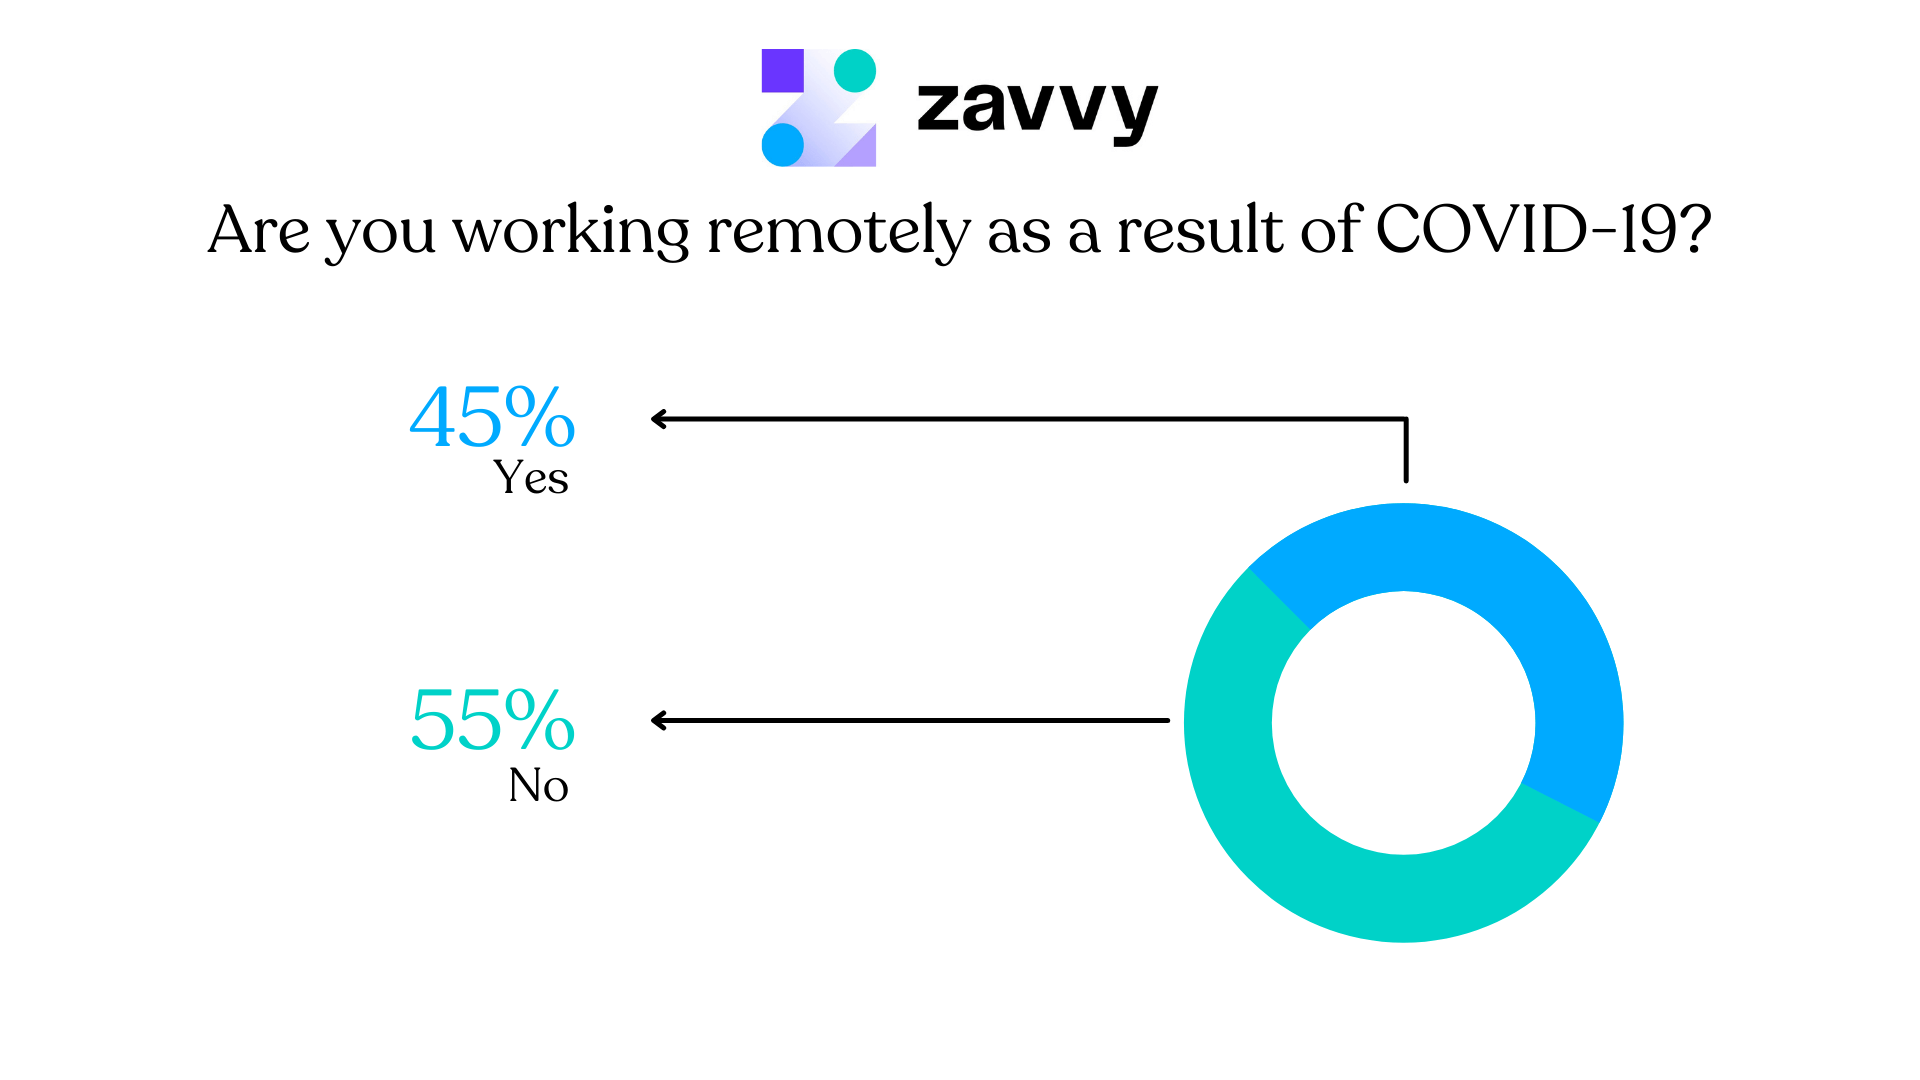 Employee survey on people working remotely as a result of covid 19. 45% say yes.